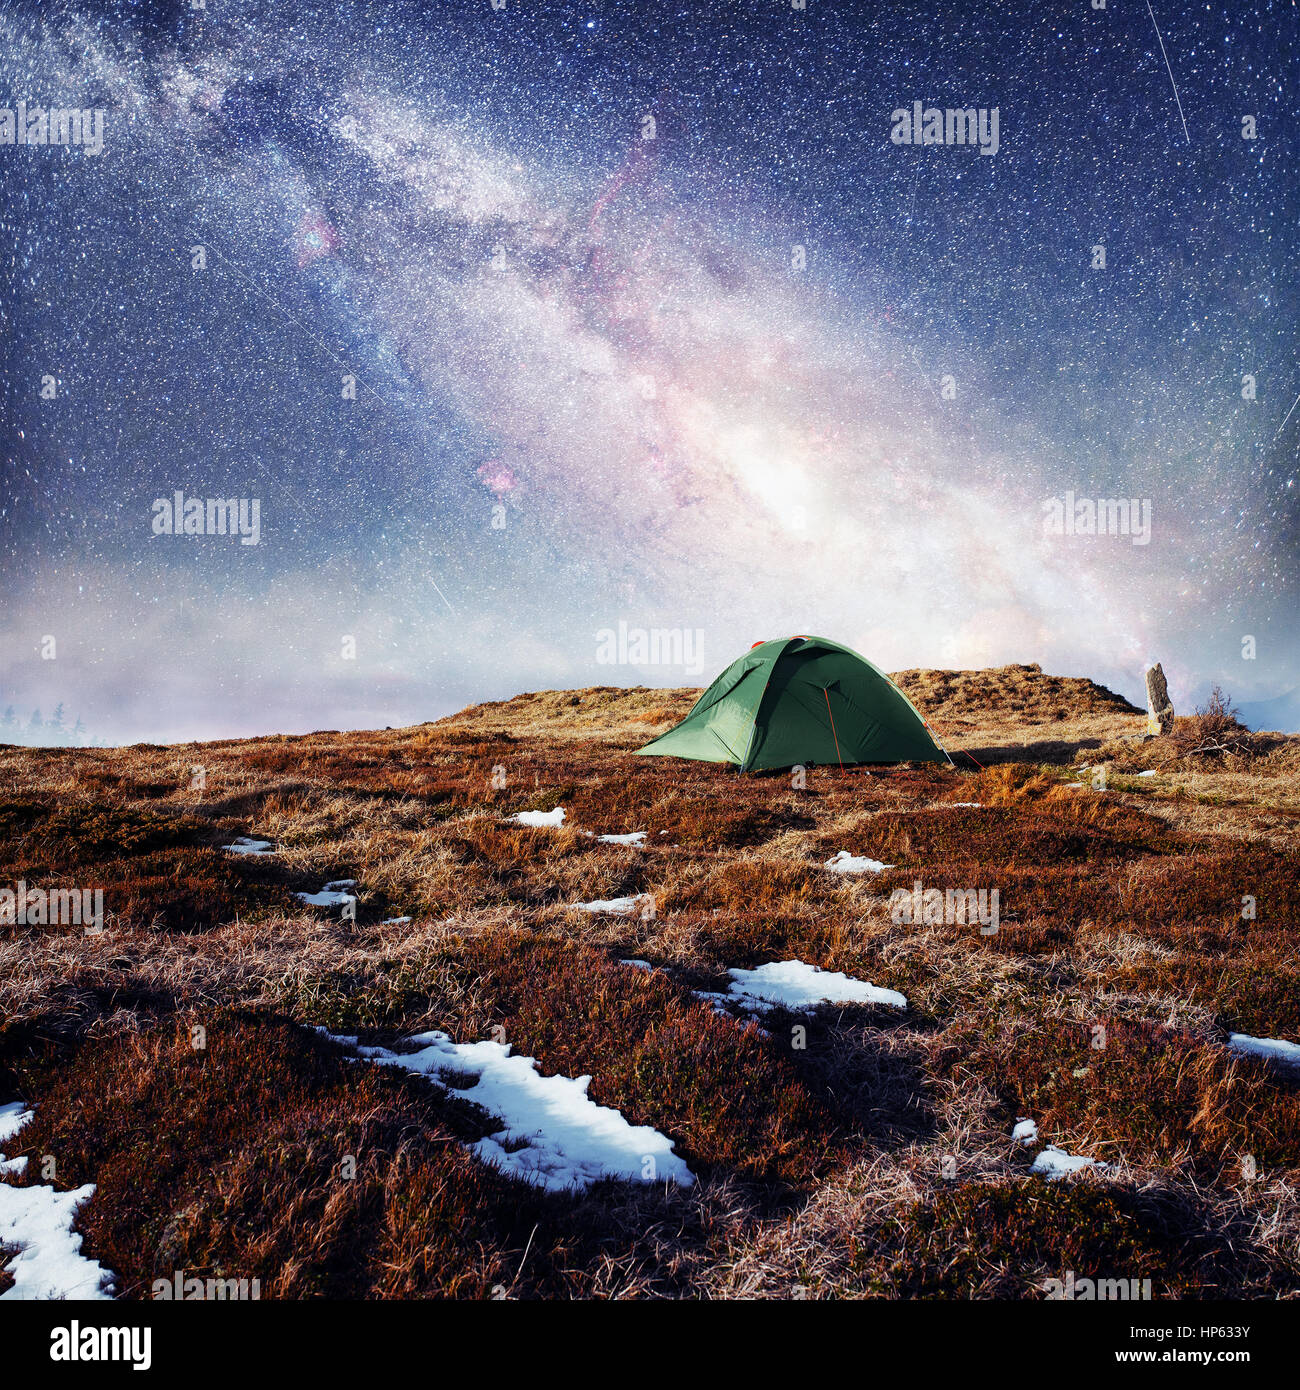 the starry sky above the tent in the mountains. Magic event in f - Stock Image